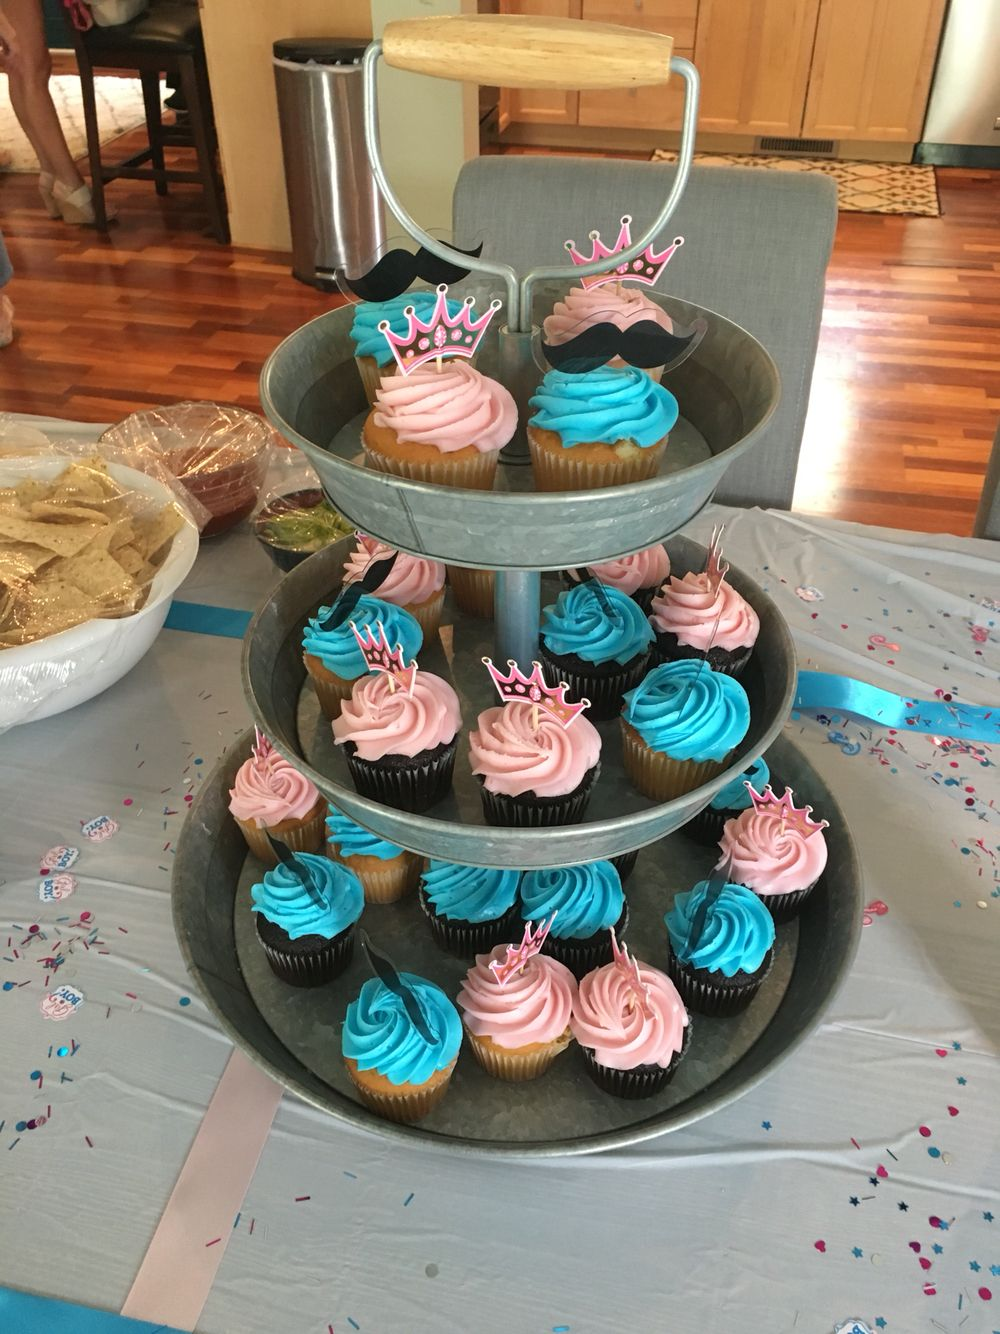 Gender Reveal Party Idea Cupcakes 15 Ordered From Sam S Club Cupcake Picks Mustache And Crowns From Hobby Reveal Parties Gender Reveal Party Cupcake Picks